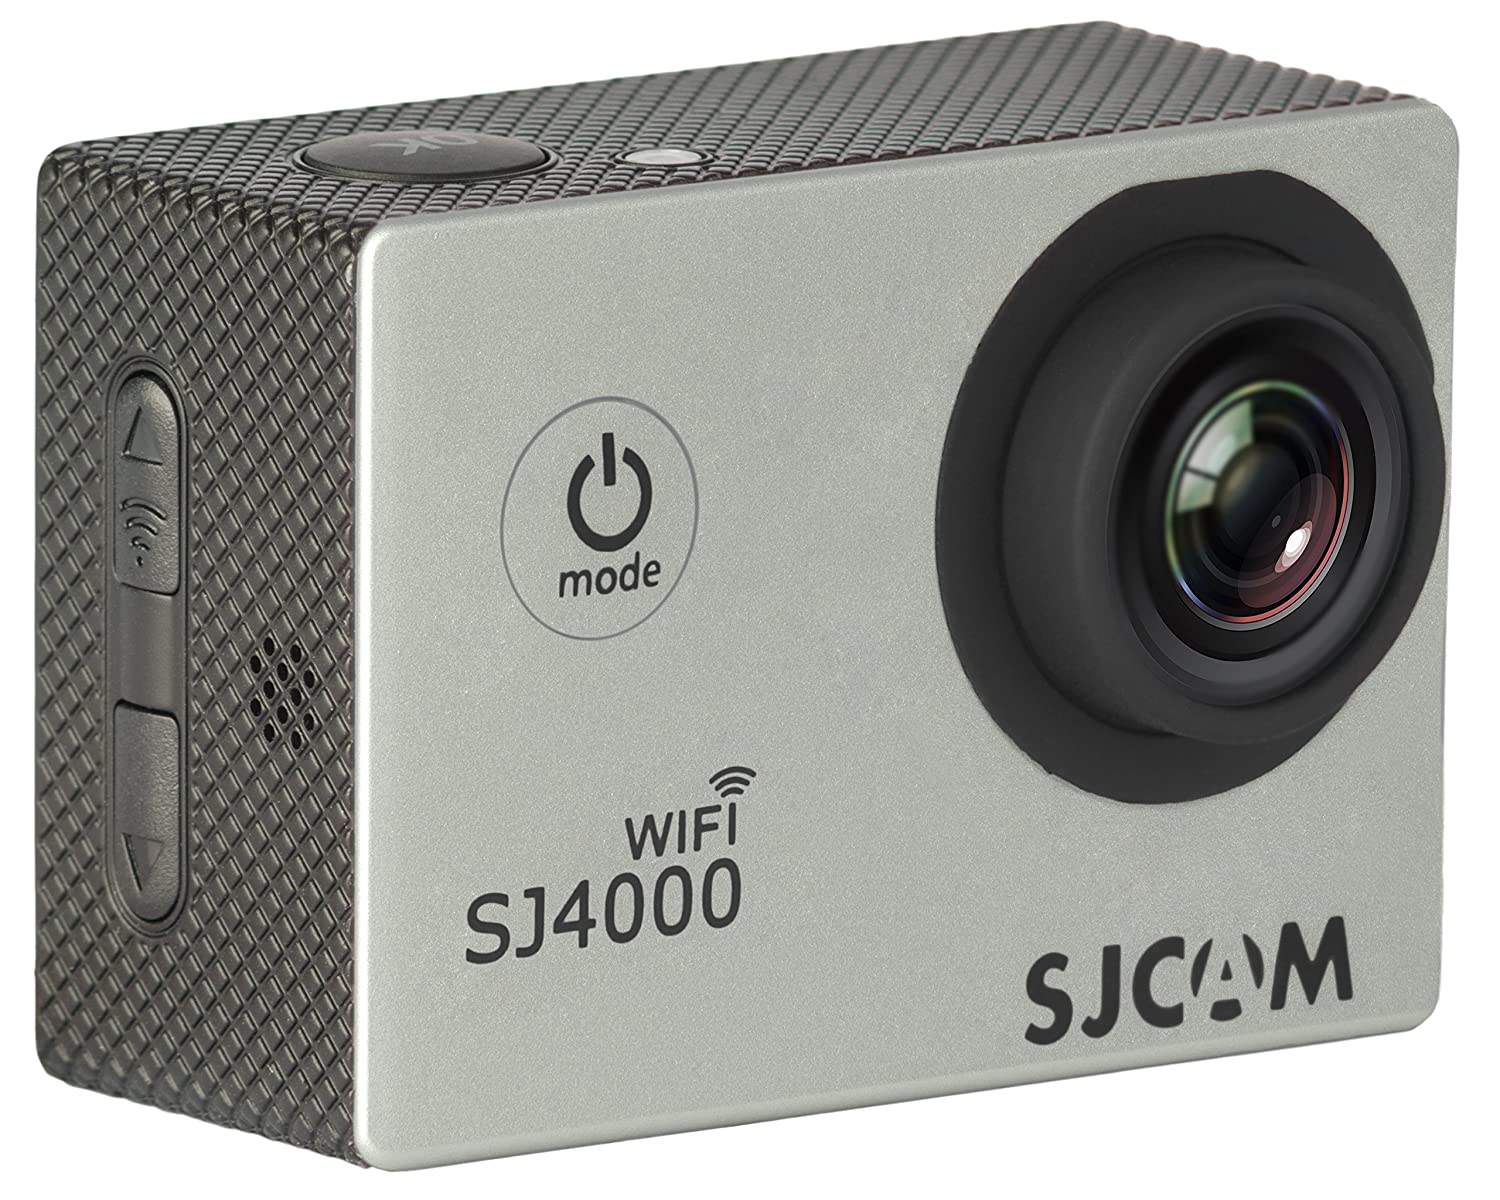 Instructions on how to set up a sjcam sj 4000 - Amazon Com Sjcam Sj4000 Wifi Action Camera 12mp 1080p 2 Inch Screen Waterproof Silver Camera Photo